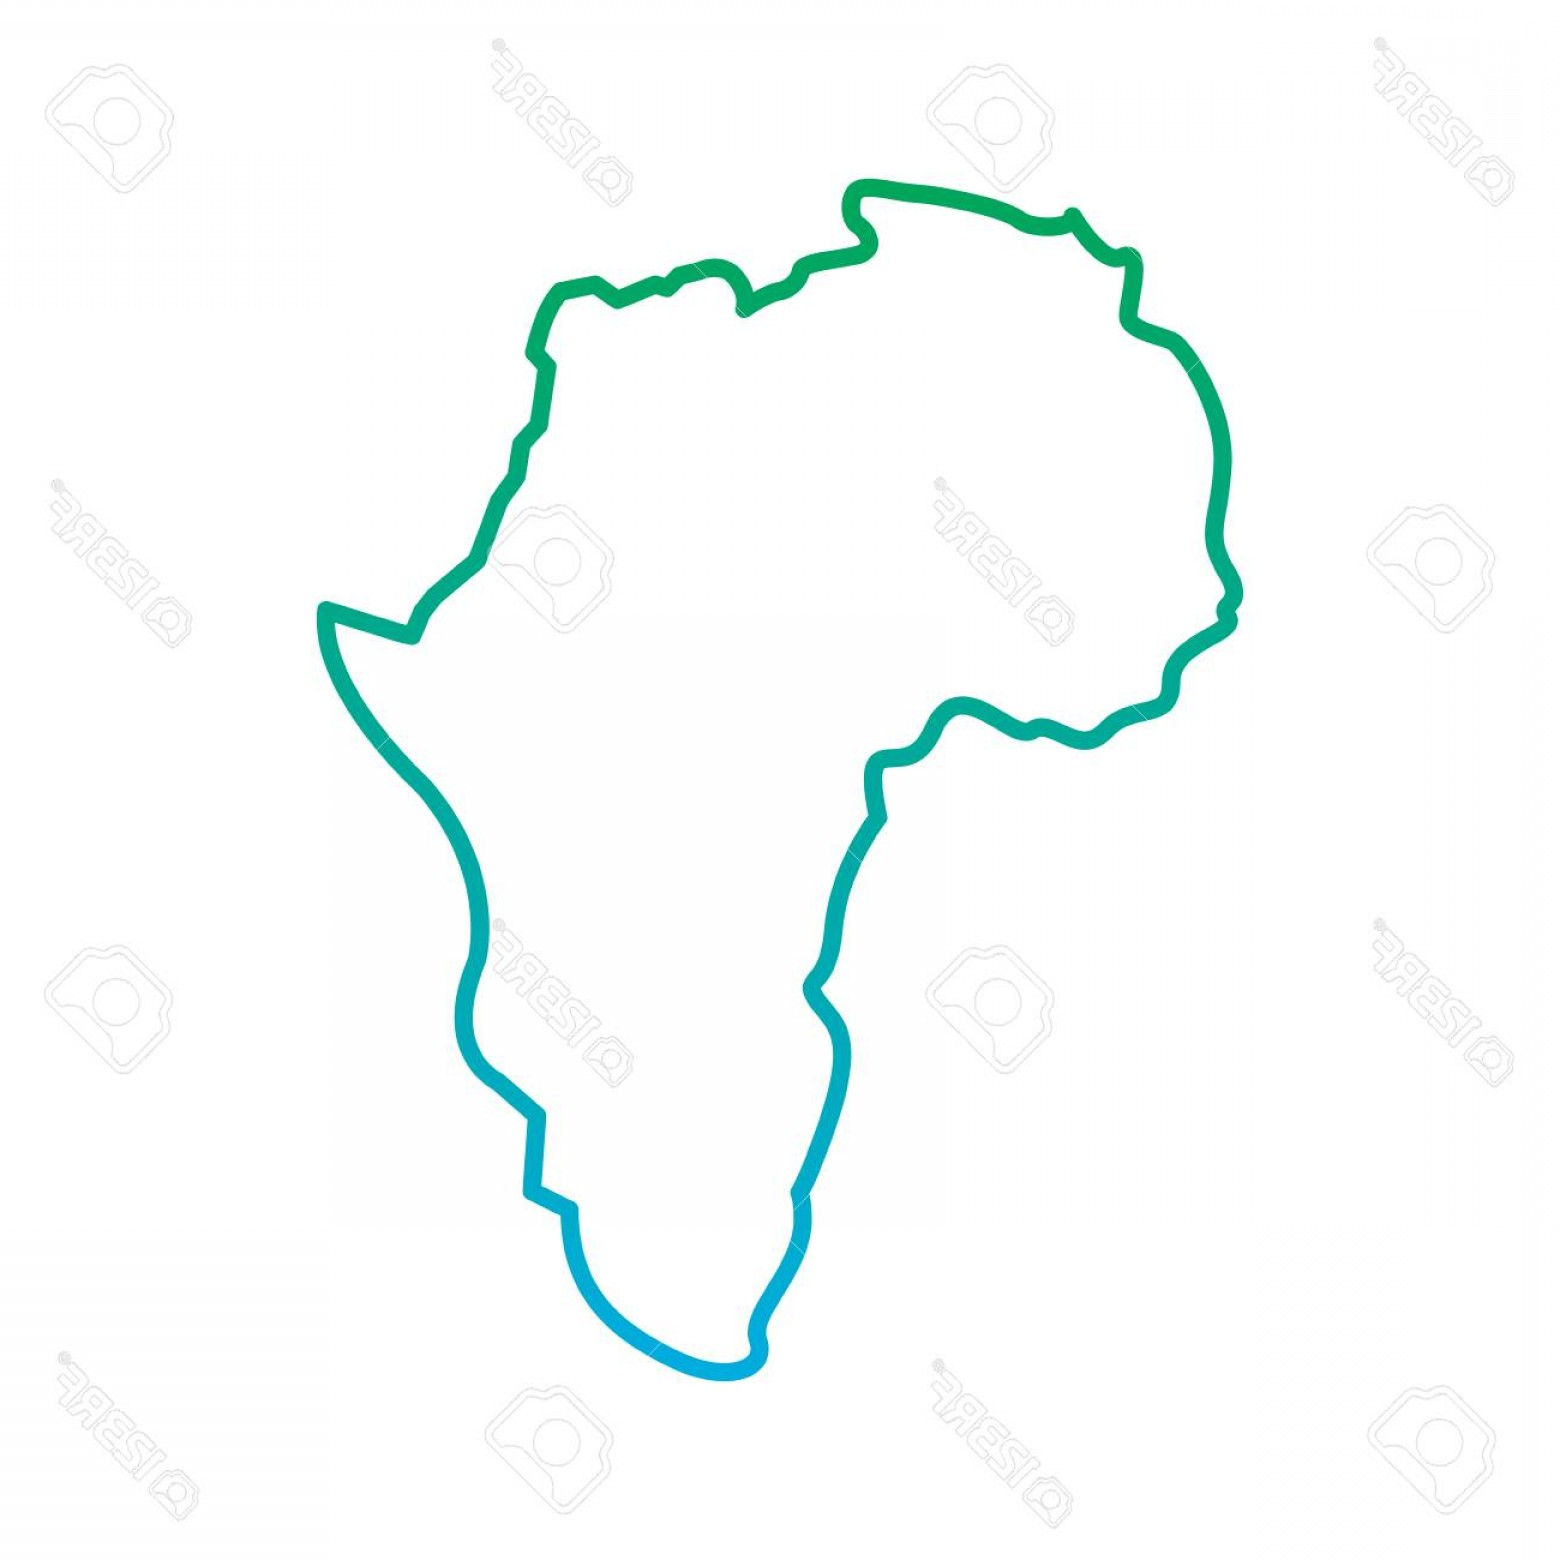 BG Vector Map: Photostock Vector Map Of Africa Continent Silhouette On A White Background Vector Illustration Blue And Green Line Deg